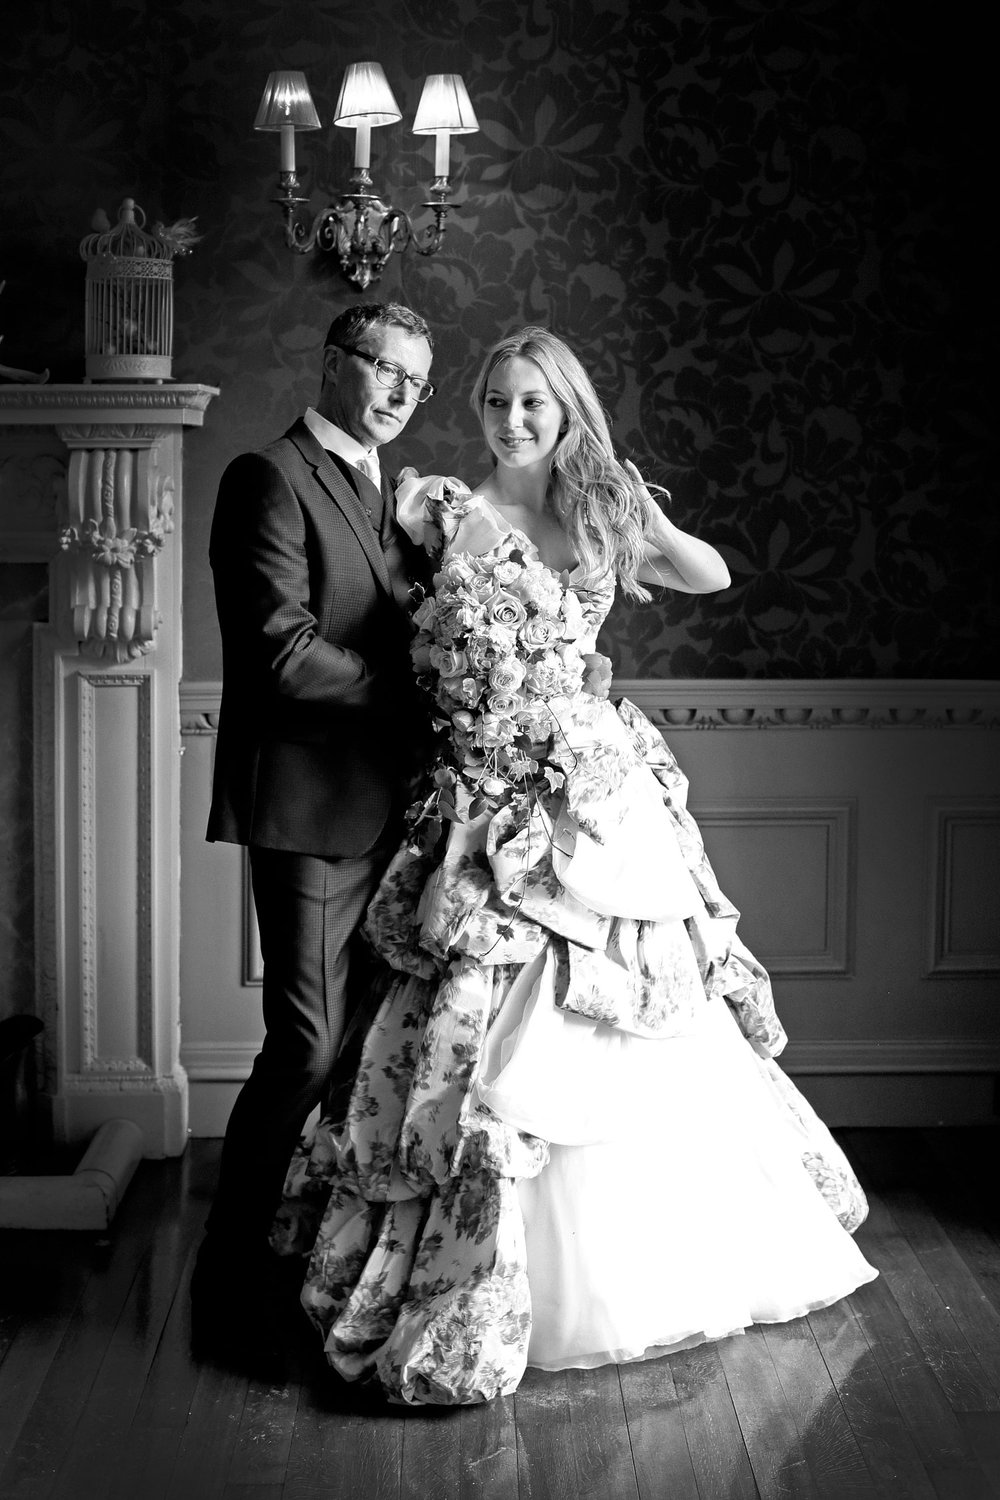 fasque house wedding scotland photo62.jpg